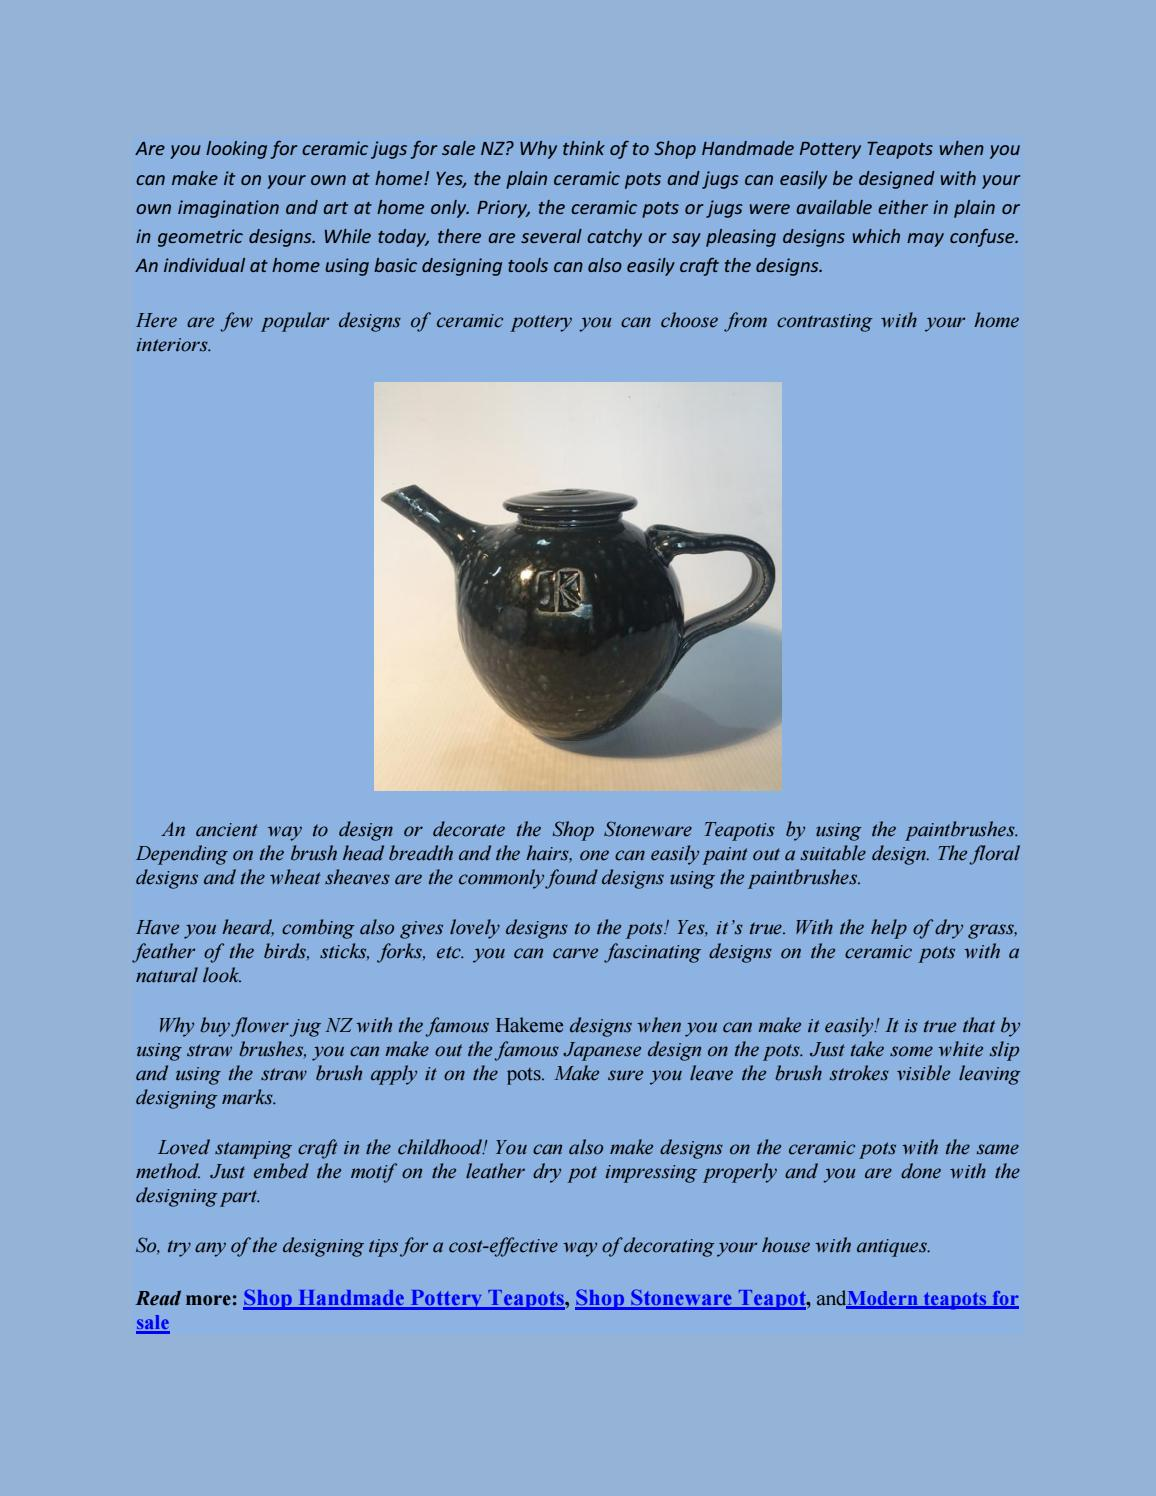 Shop Stoneware Teapot By Kim Morgan   Issuu